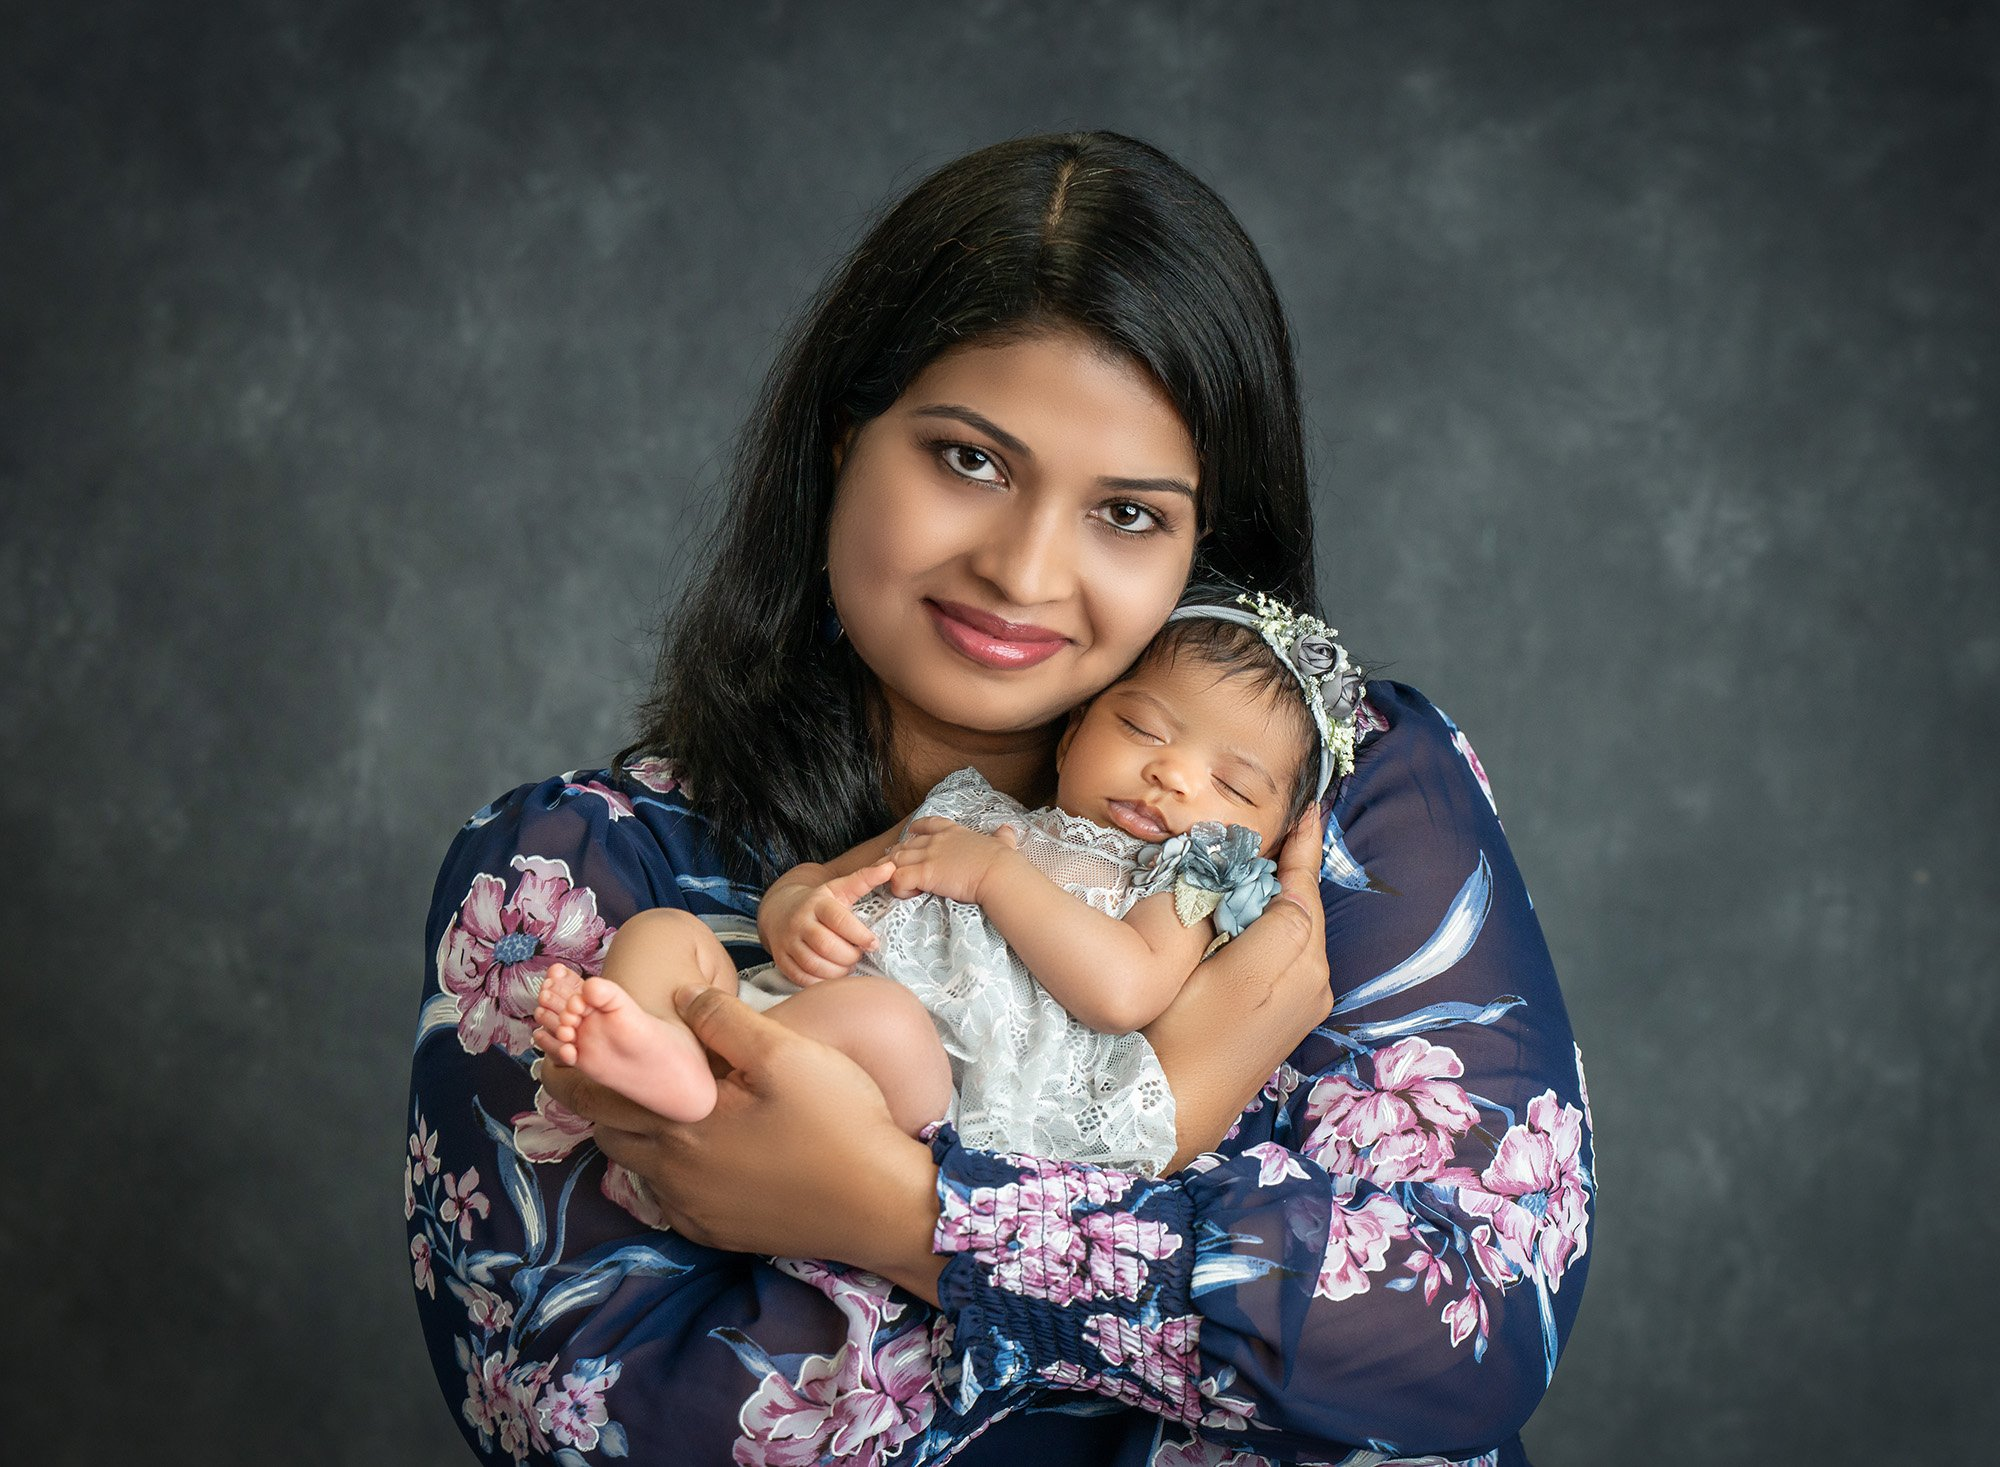 new mom cradling newborn baby girl in grey floral dress close to her chest